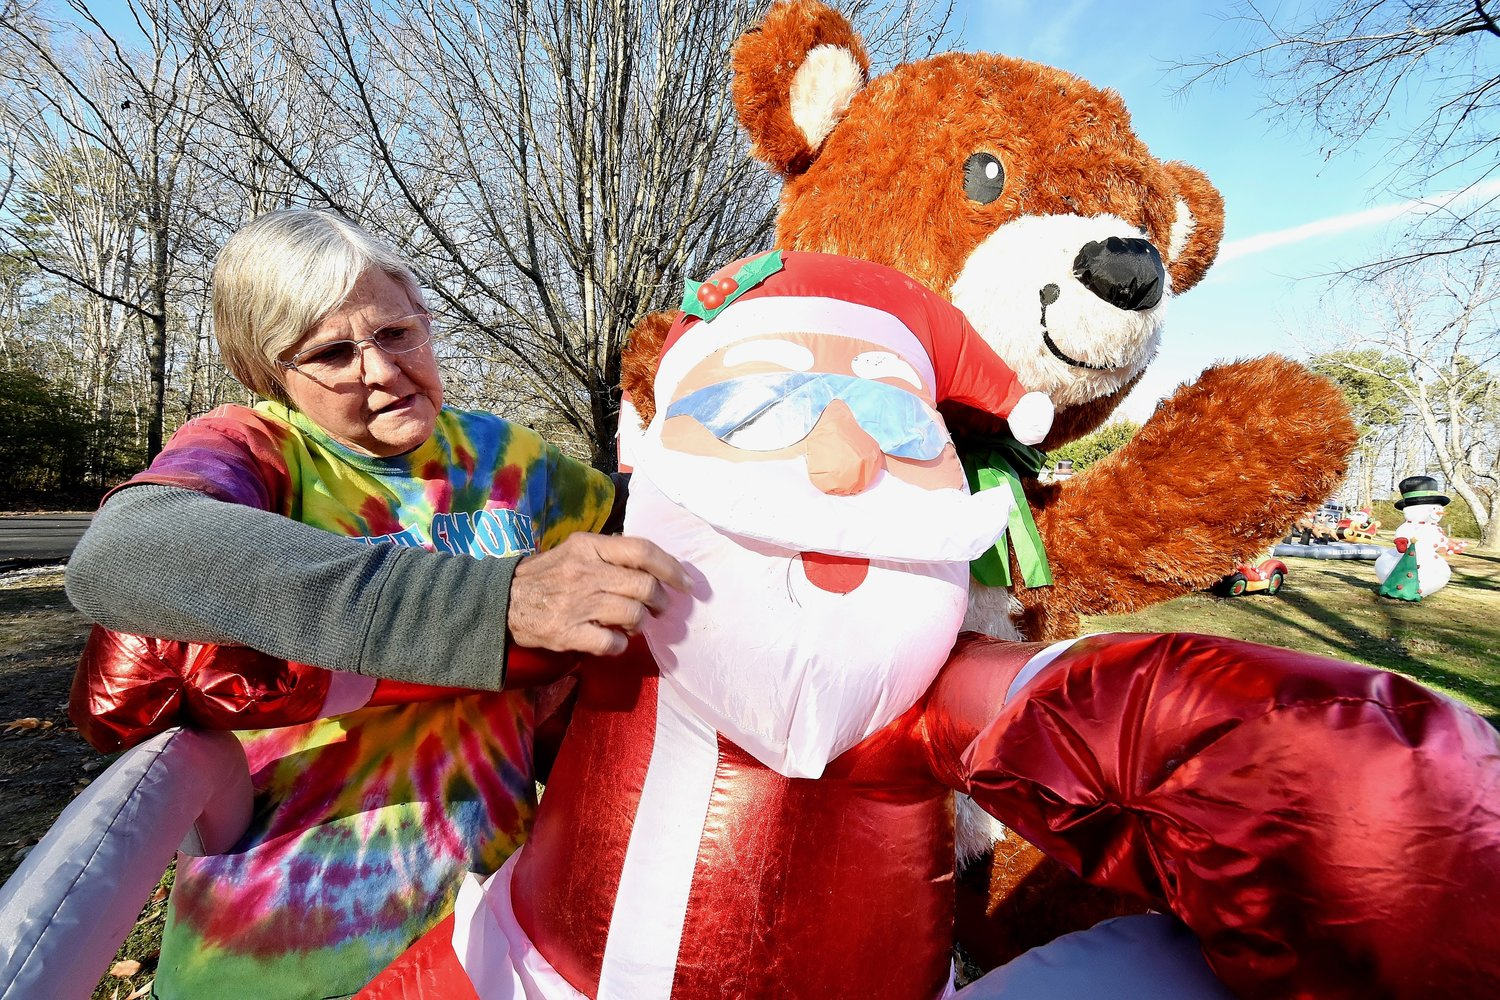 Sheila McGuirt makes adjustments to a Santa and teddy bear inflatable that she refers to as one of her favorites among the more than 300 inflatables on their property.